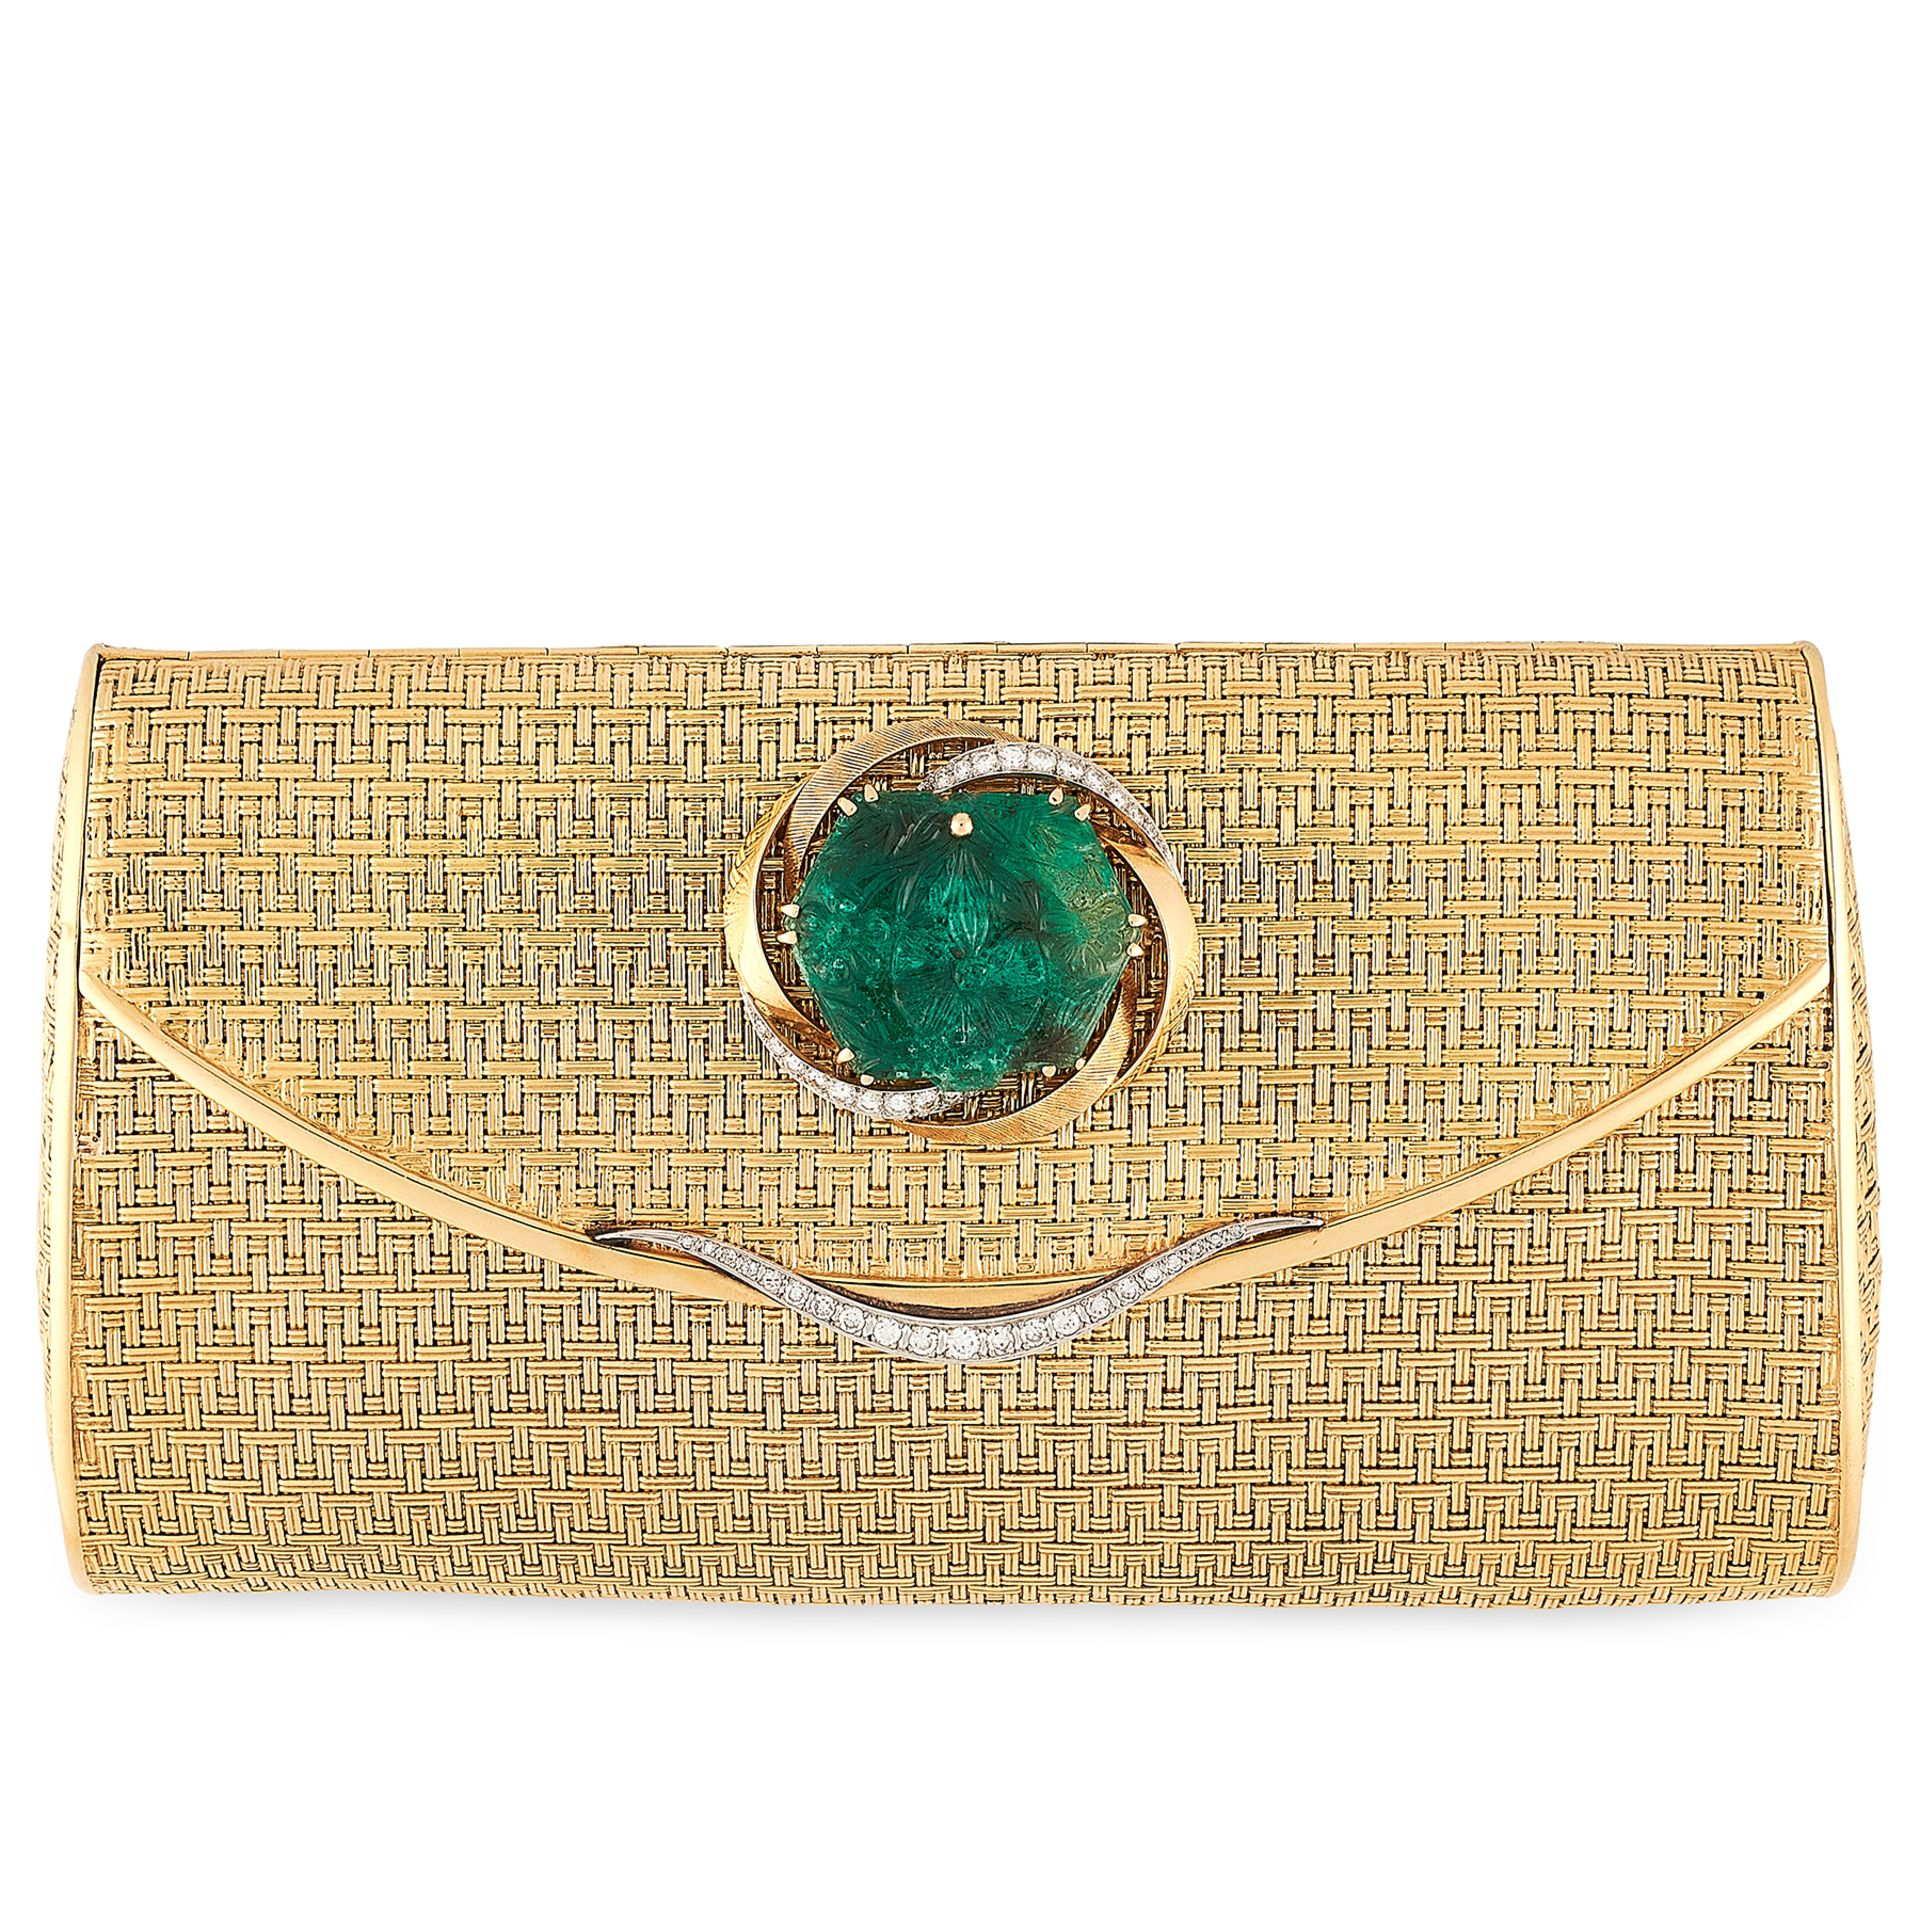 Los 46 - A VINTAGE EMERALD AND DIAMOND EVENING BAG, CARTIER in 18ct yellow gold, the woven body with hinged